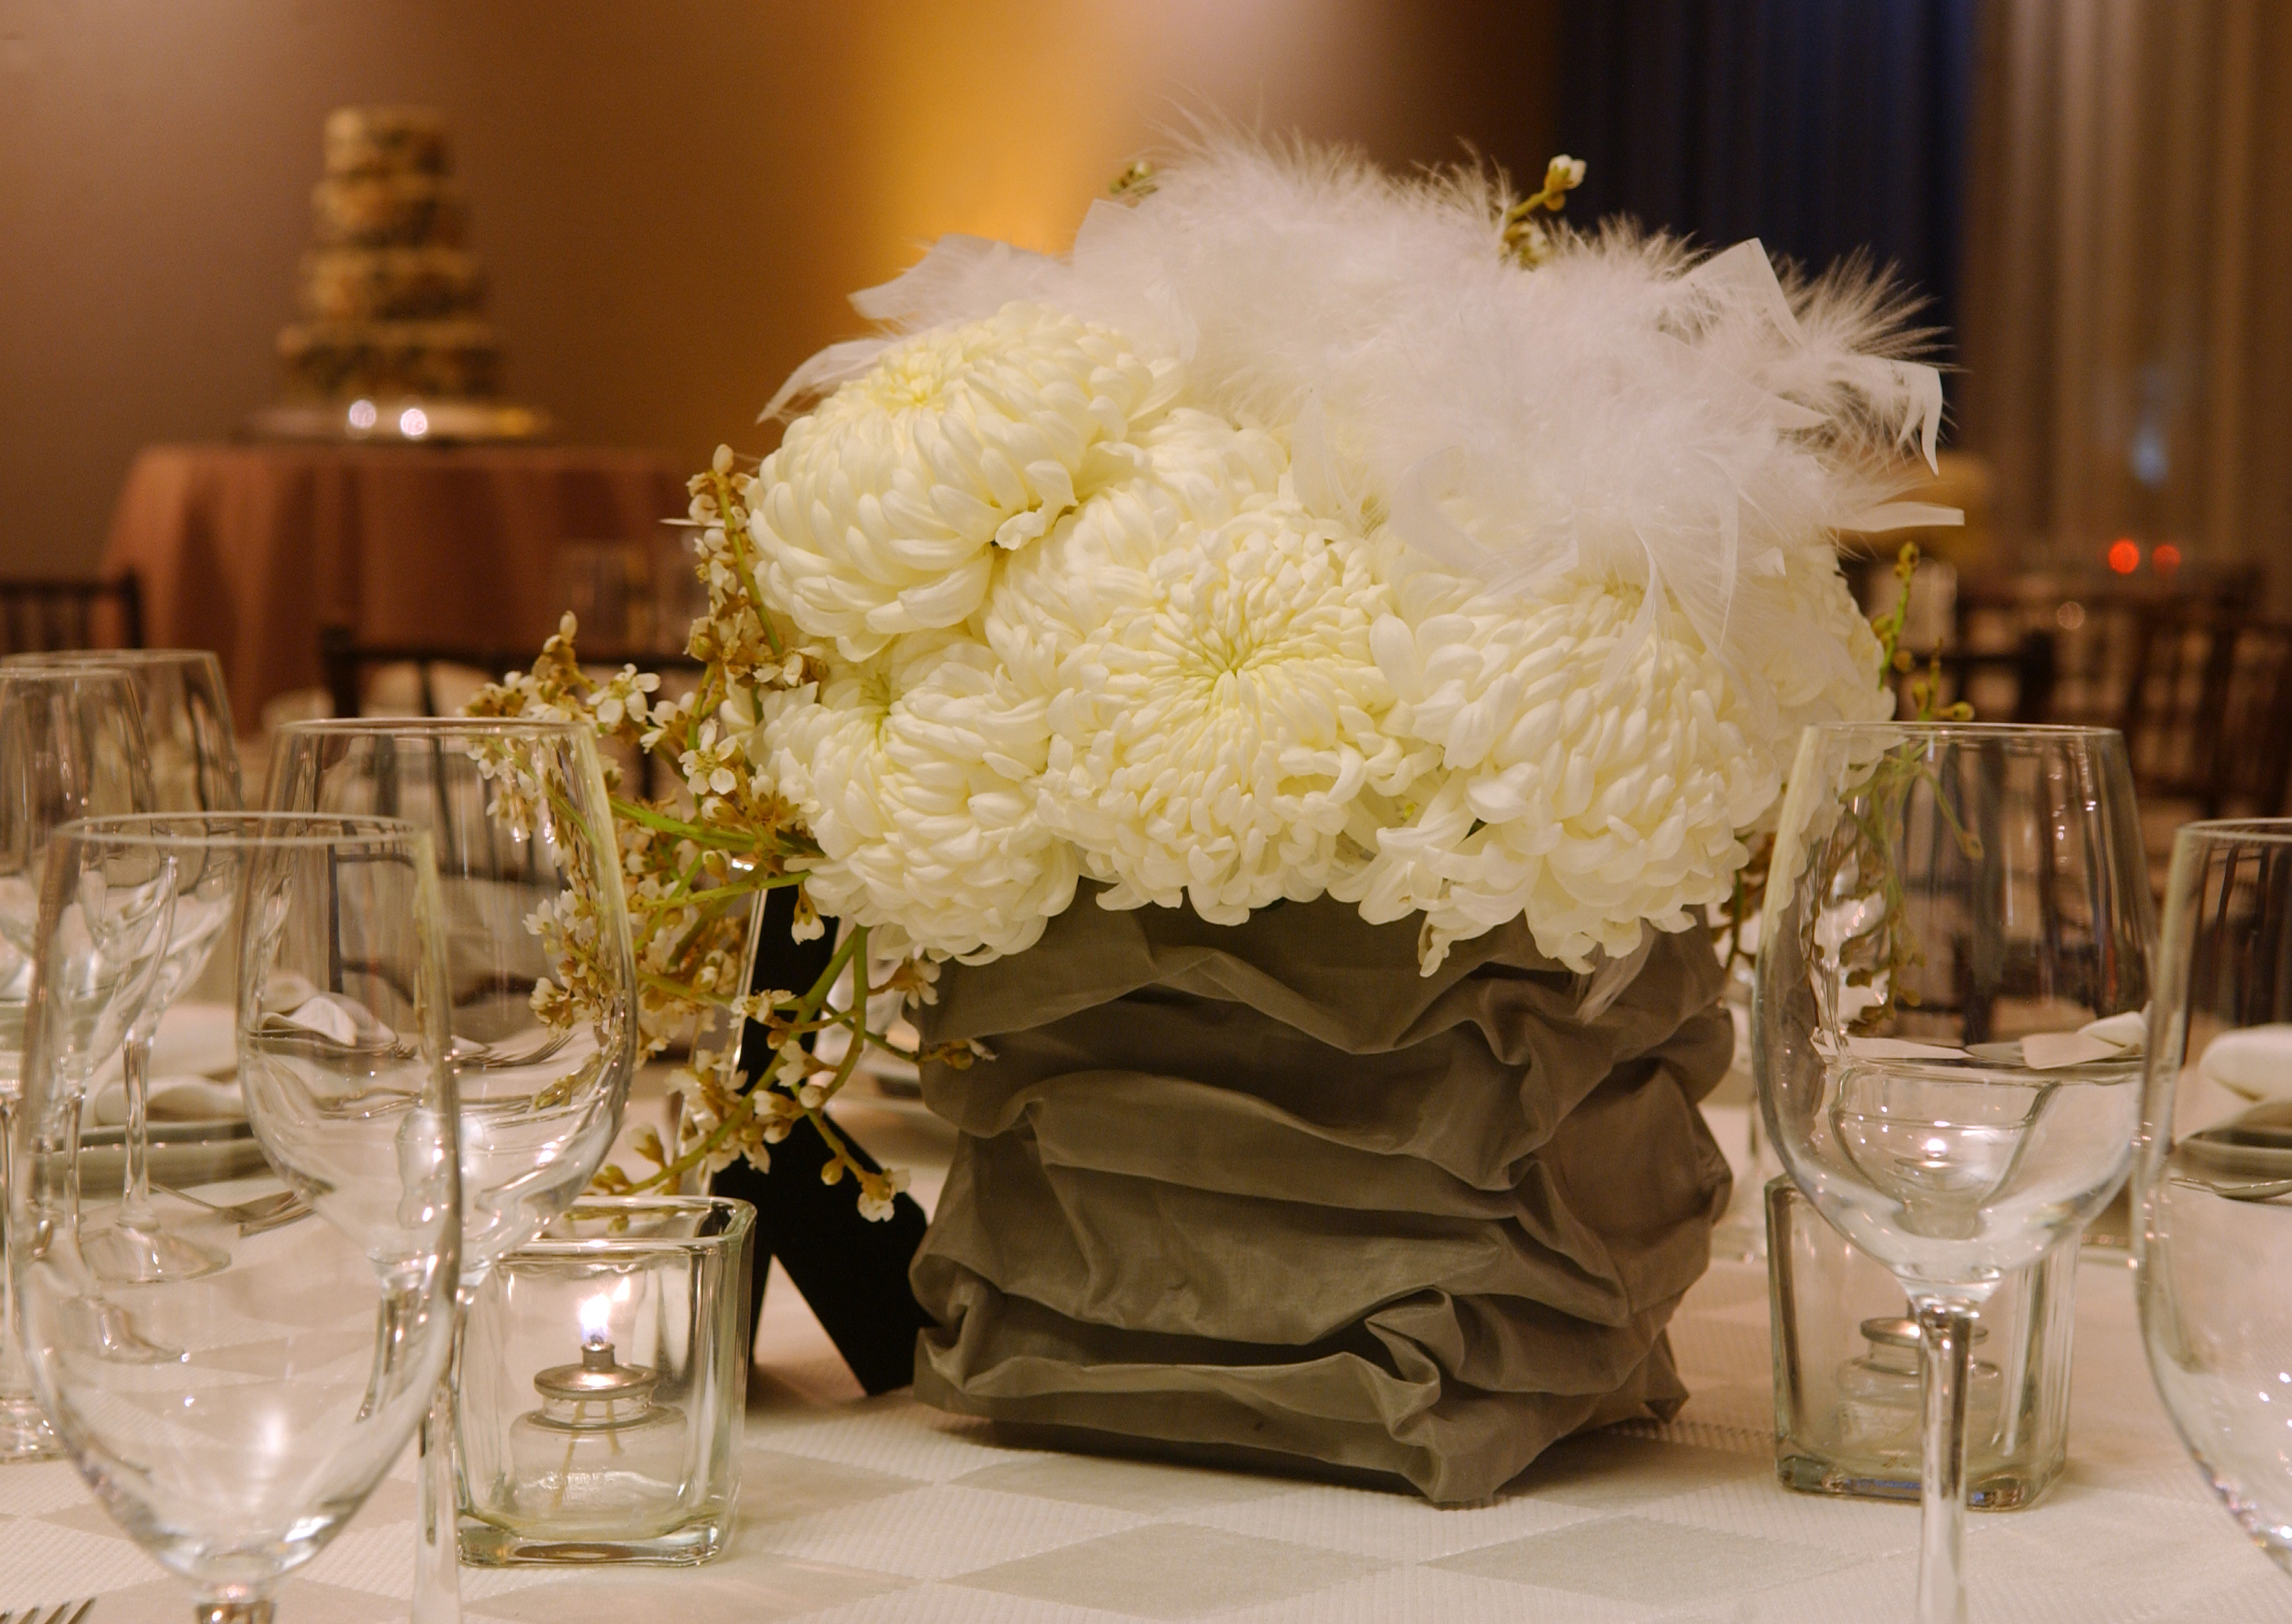 Beauty, Flowers & Decor, white, Feathers, Centerpieces, Flowers, Grey